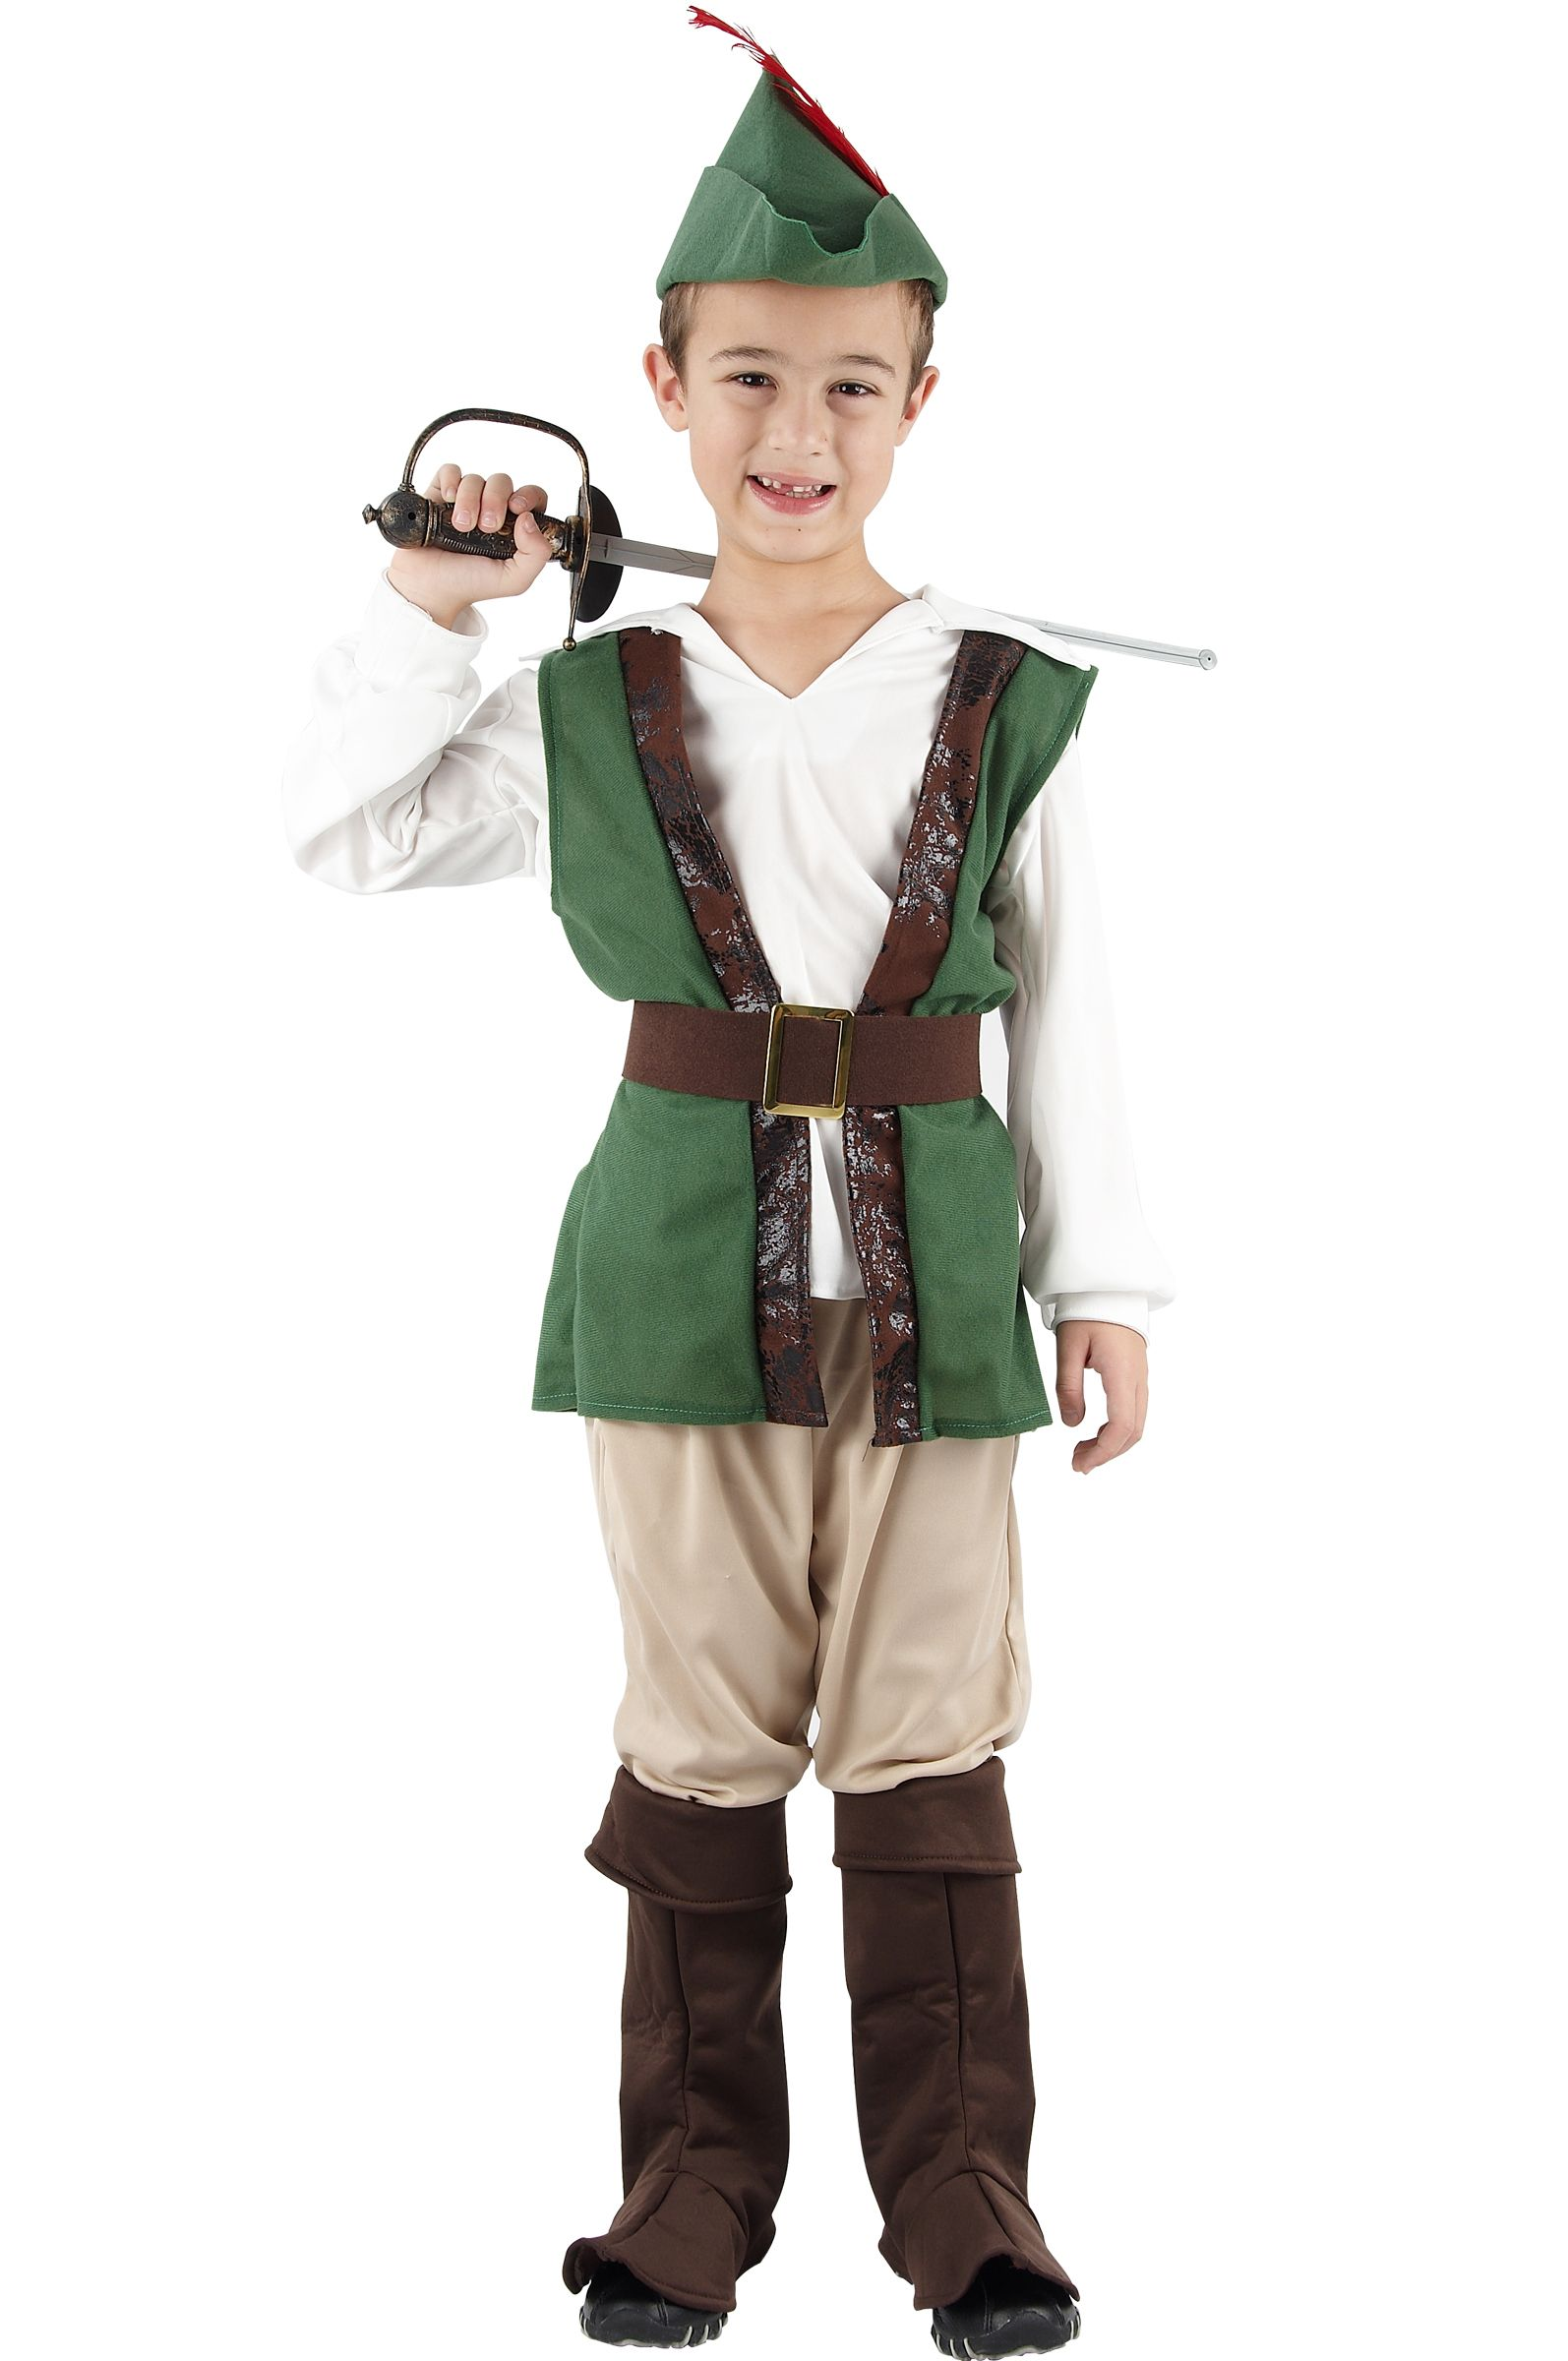 Robin Hood costume for boys.  sc 1 st  Pinterest & Robin Hood costume for boys. | sewing room | Pinterest | Robin hoods ...